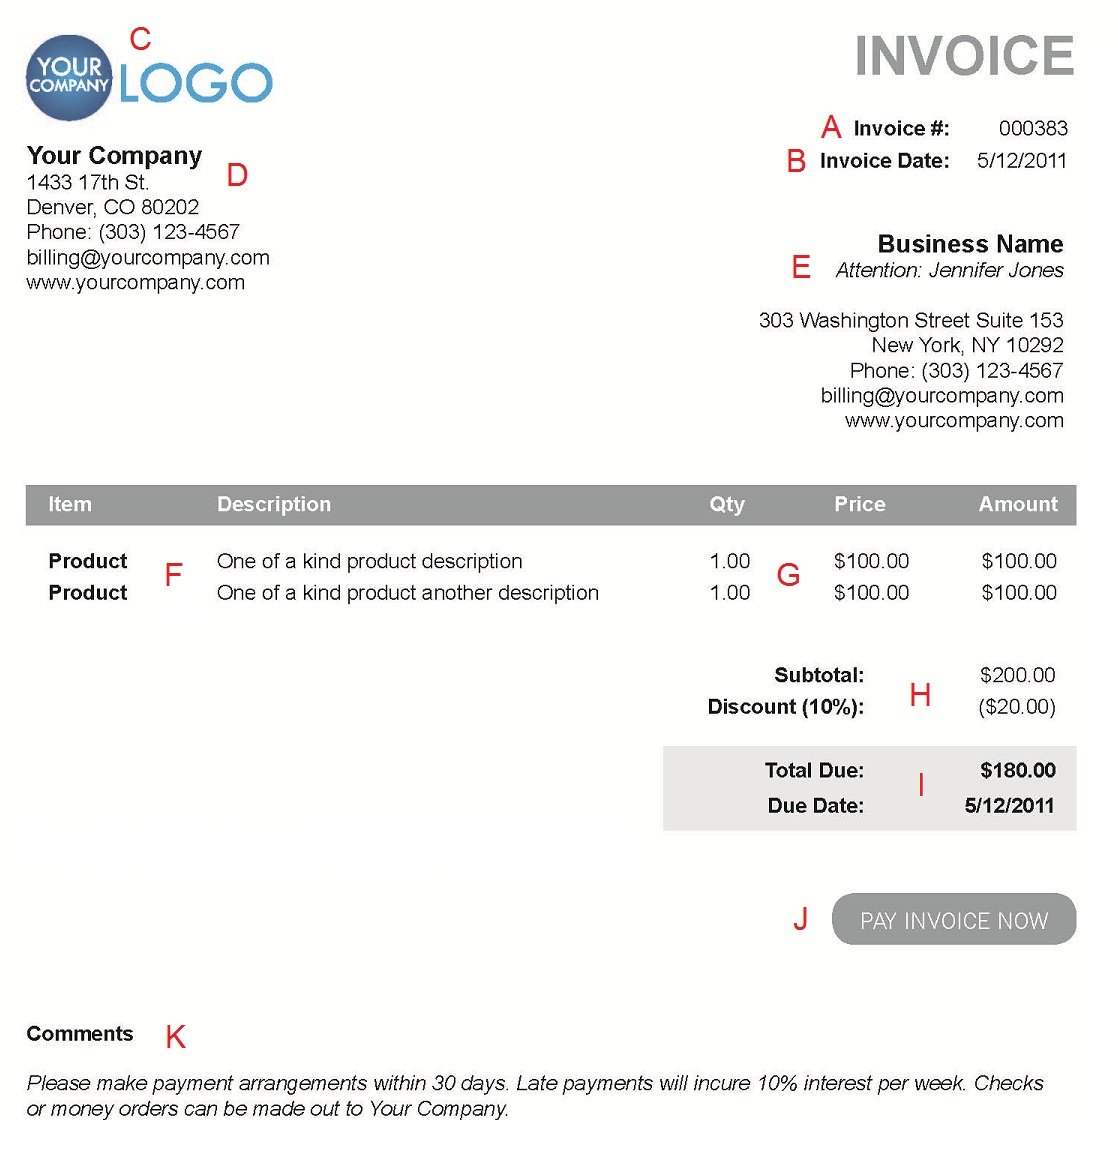 Sandiegolocksmithsus  Inspiring The  Different Sections Of An Electronic Payment Invoice With Great A  With Comely Electronic Invoicing Software Also What Is A Ebay Invoice In Addition Aynax Free Invoice And Edi Invoices As Well As Invoice Template For Pages Additionally Auto Repair Invoices From Paysimplecom With Sandiegolocksmithsus  Great The  Different Sections Of An Electronic Payment Invoice With Comely A  And Inspiring Electronic Invoicing Software Also What Is A Ebay Invoice In Addition Aynax Free Invoice From Paysimplecom